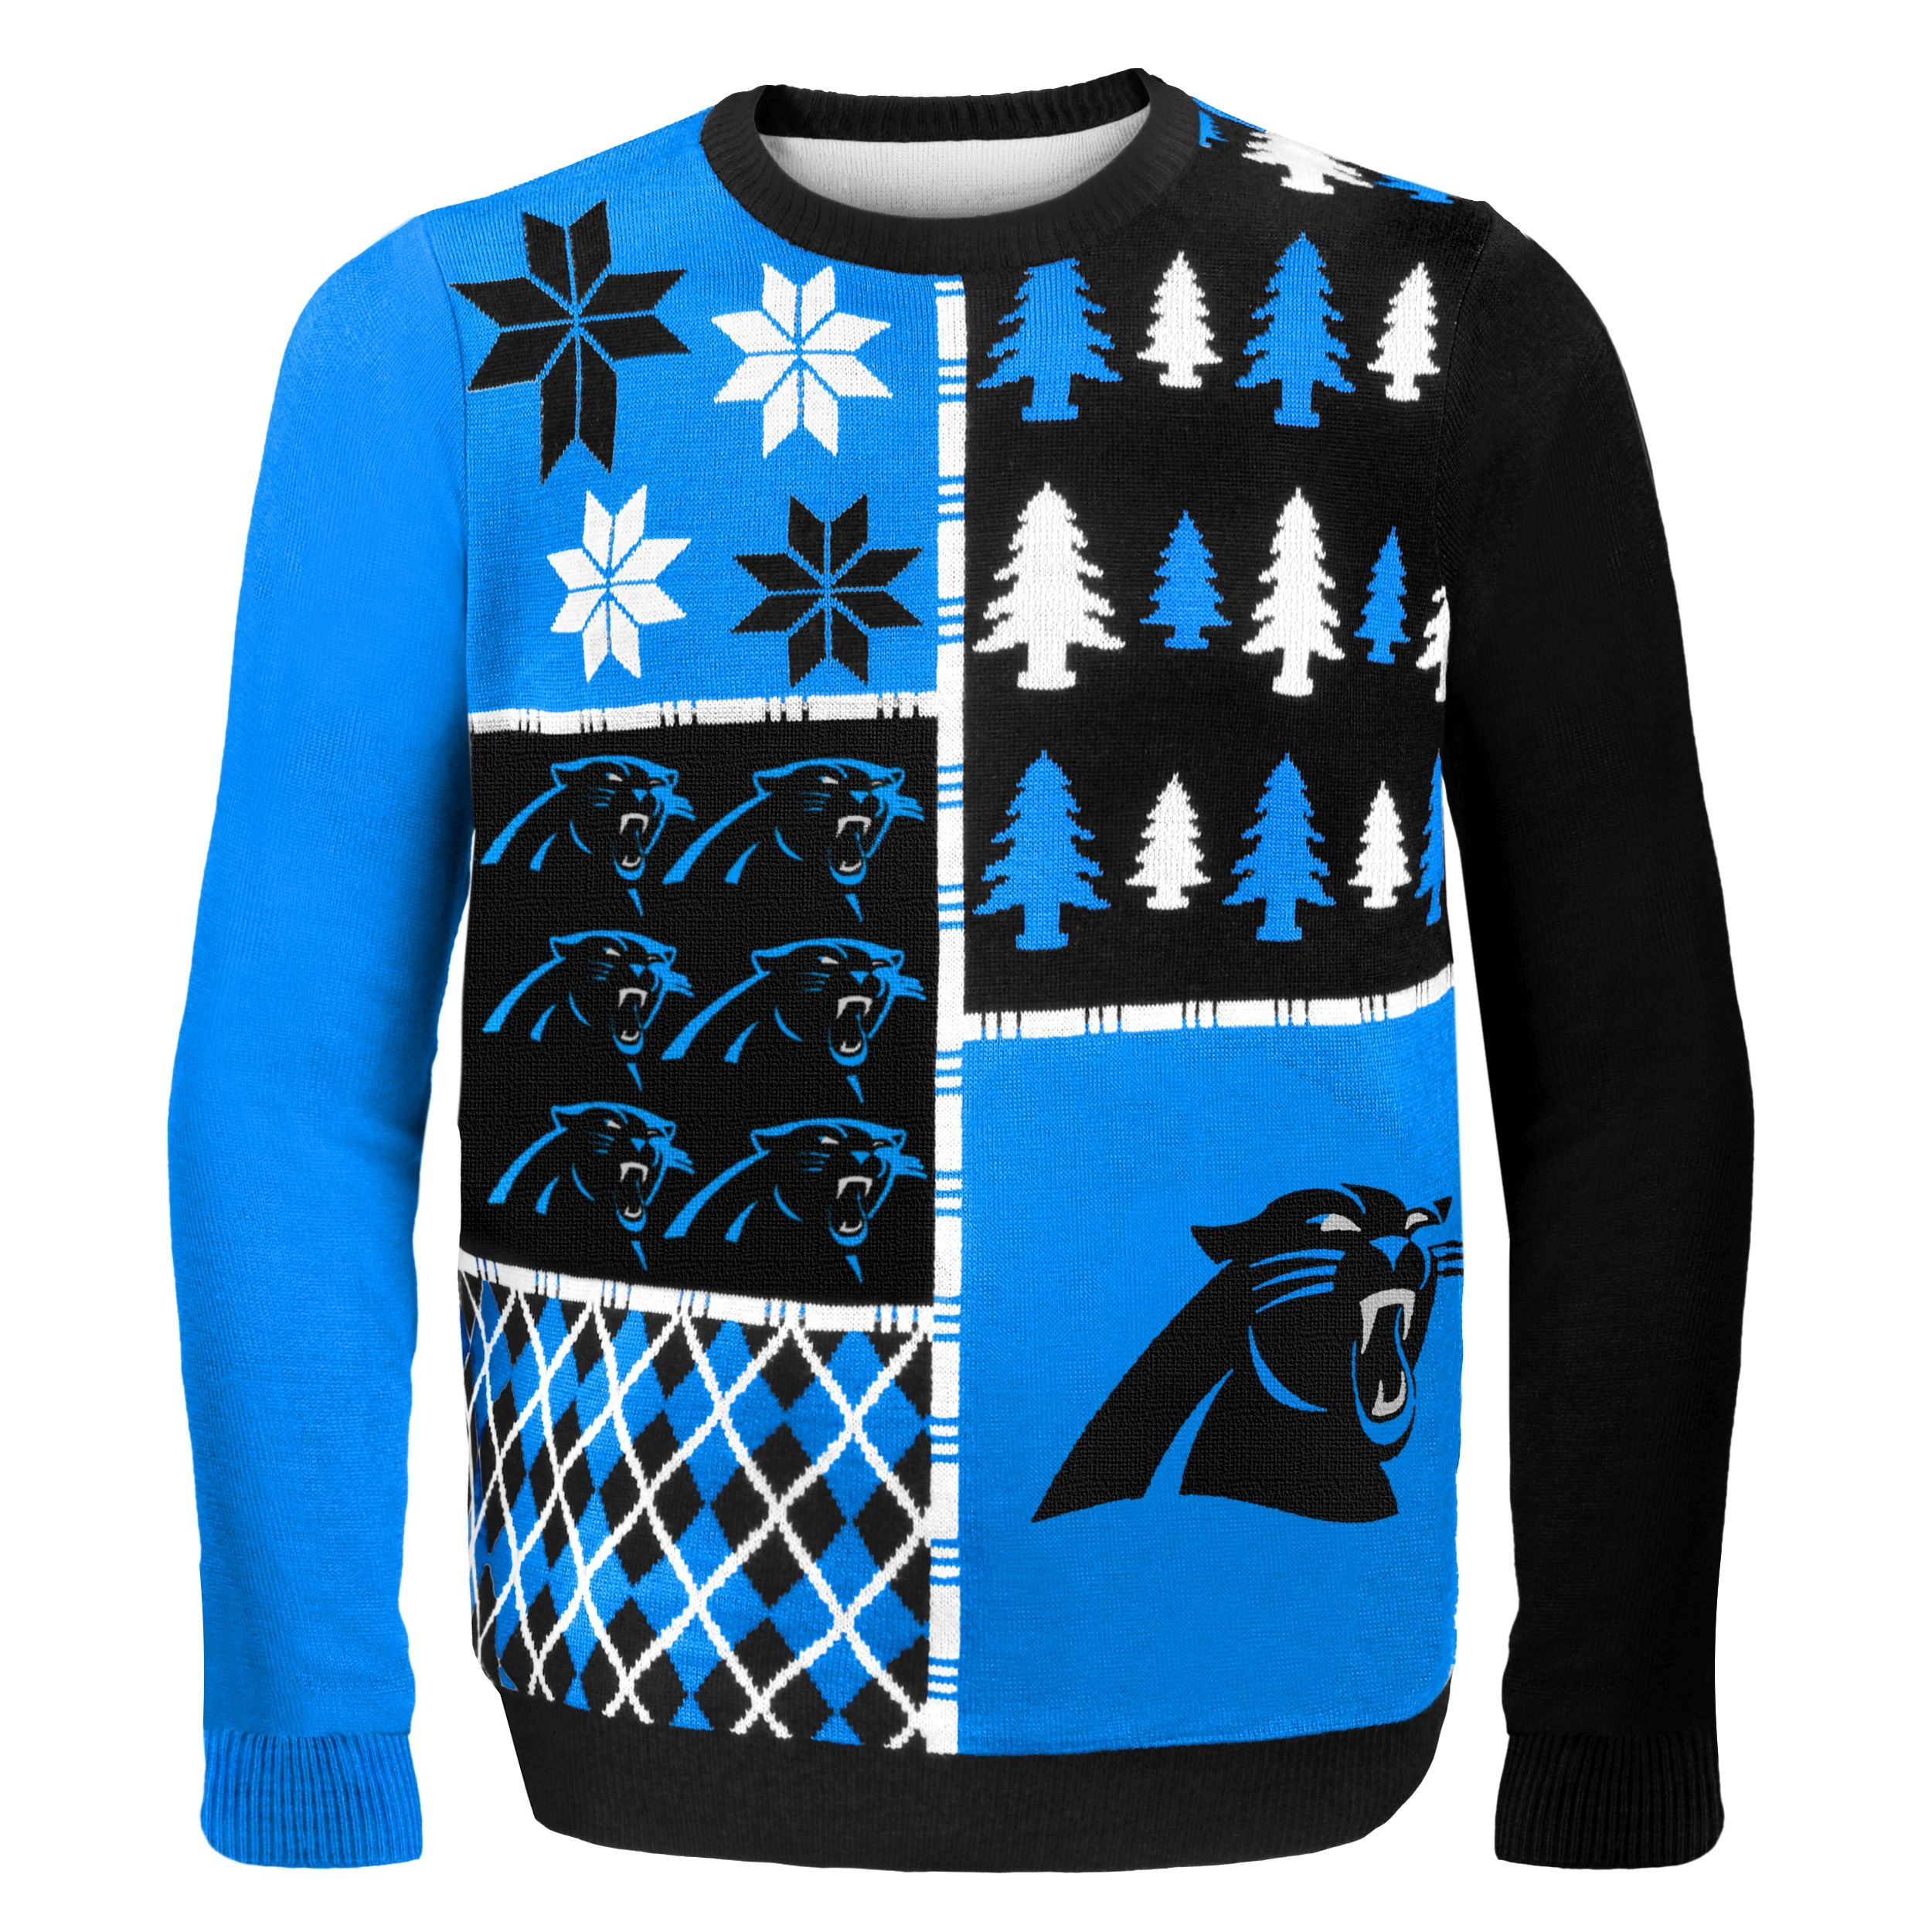 Panthers Sweater My babies Pinterest